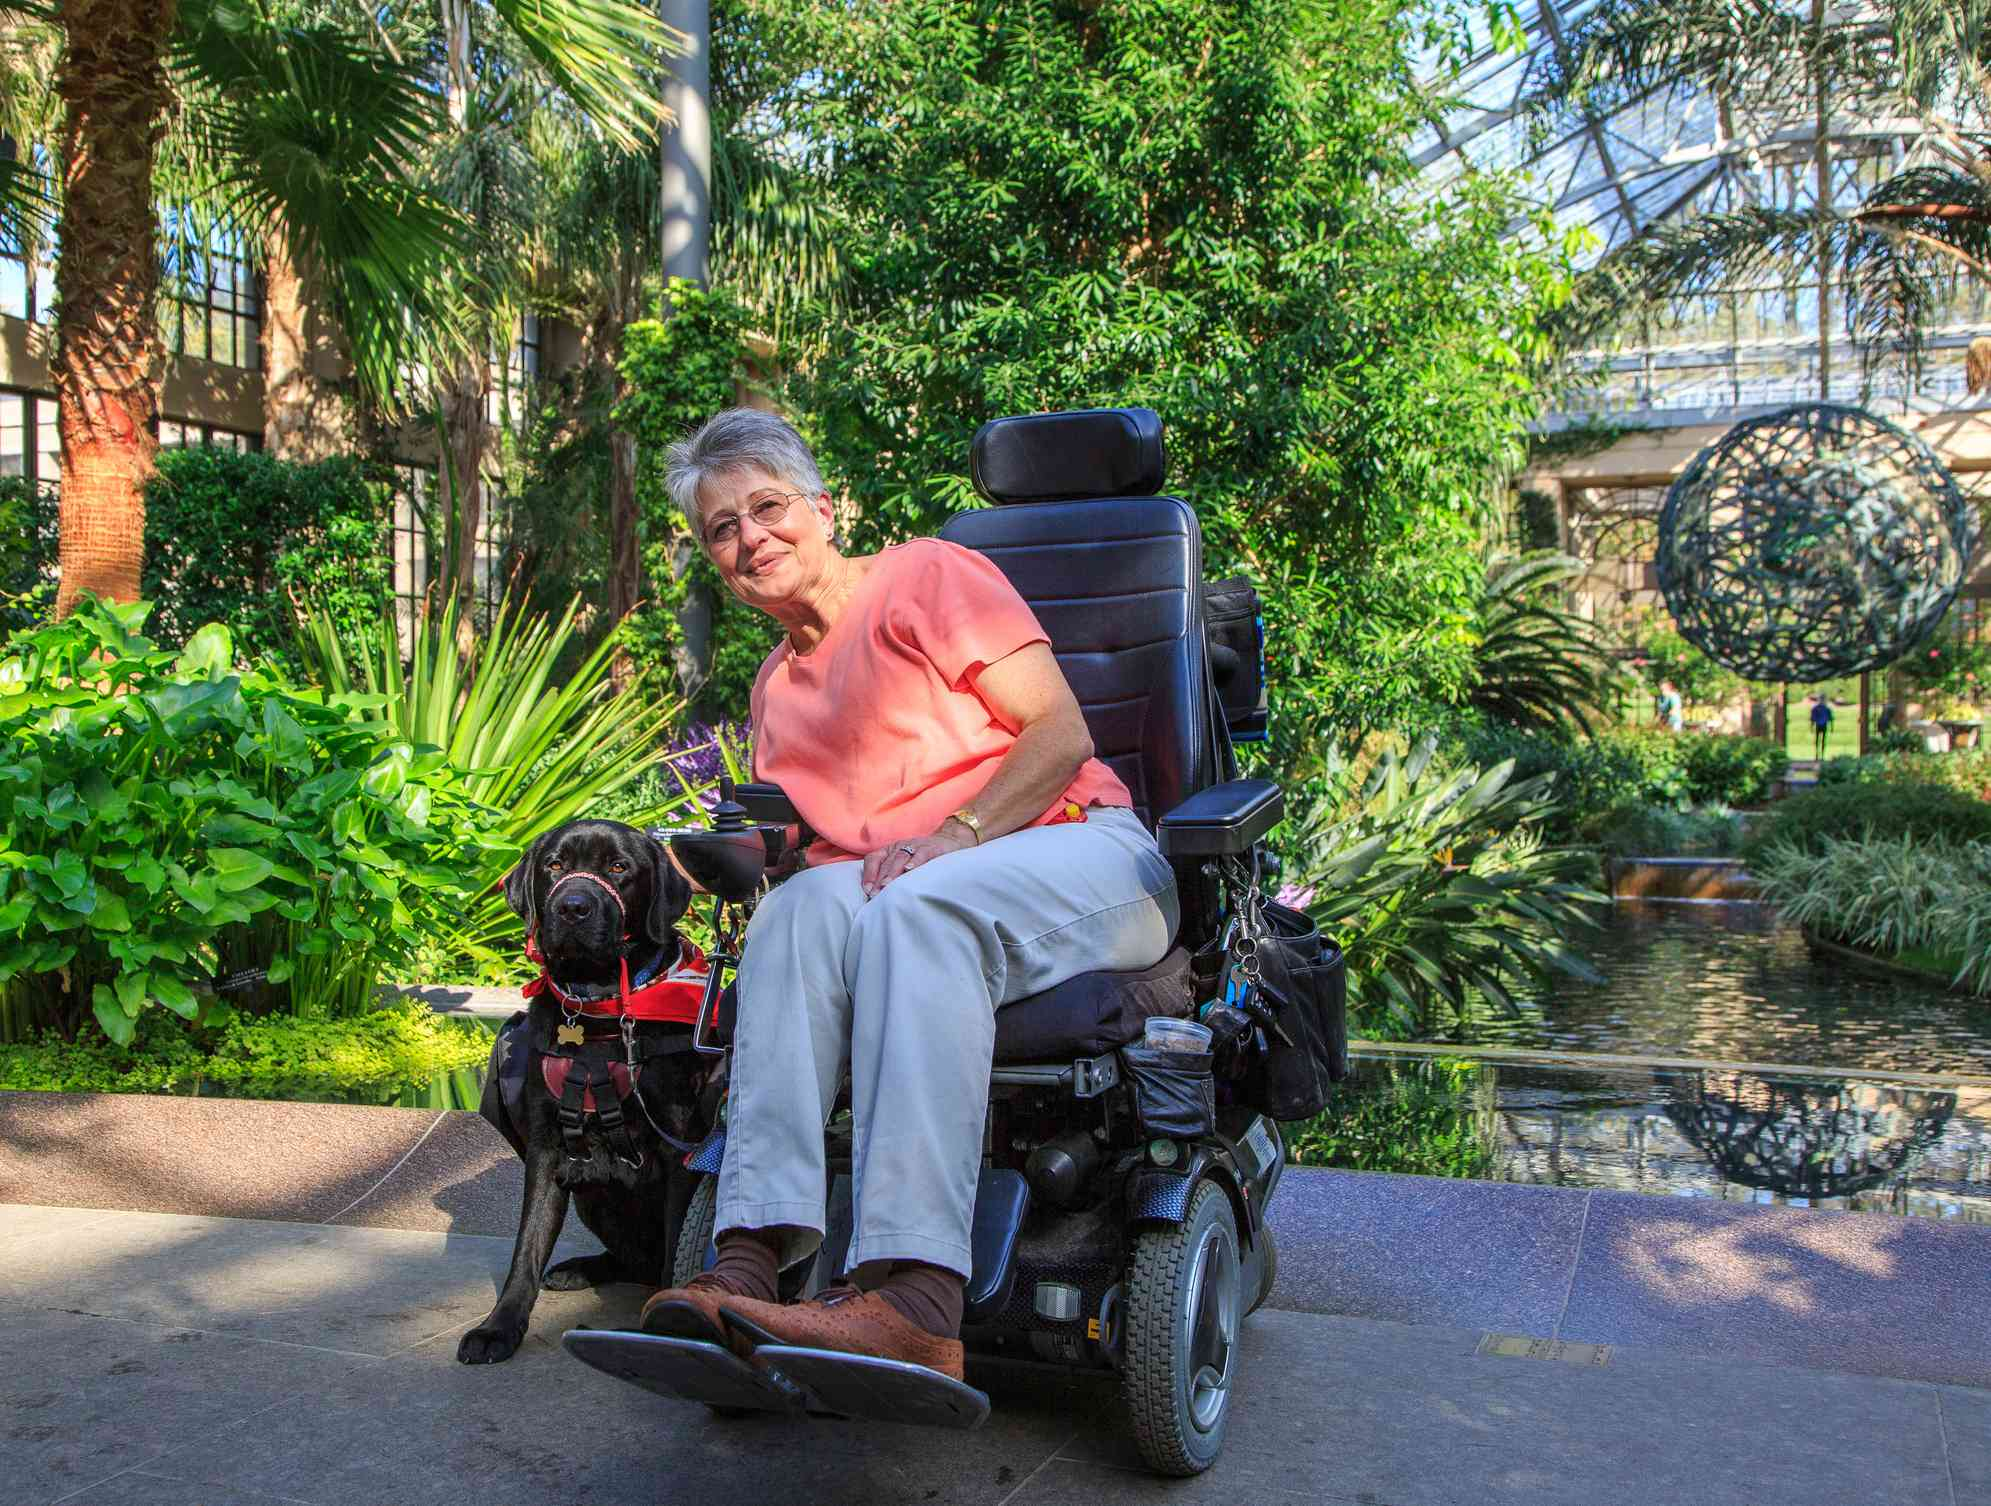 Woman in a motorized wheelchair petting her service dog outside in a park